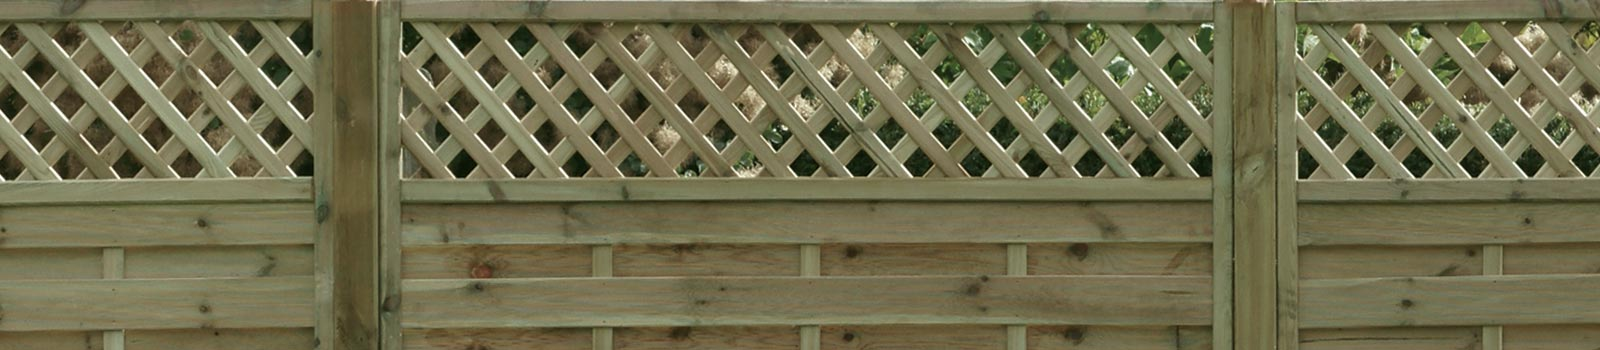 Horizontal Lattice Top fencing panels